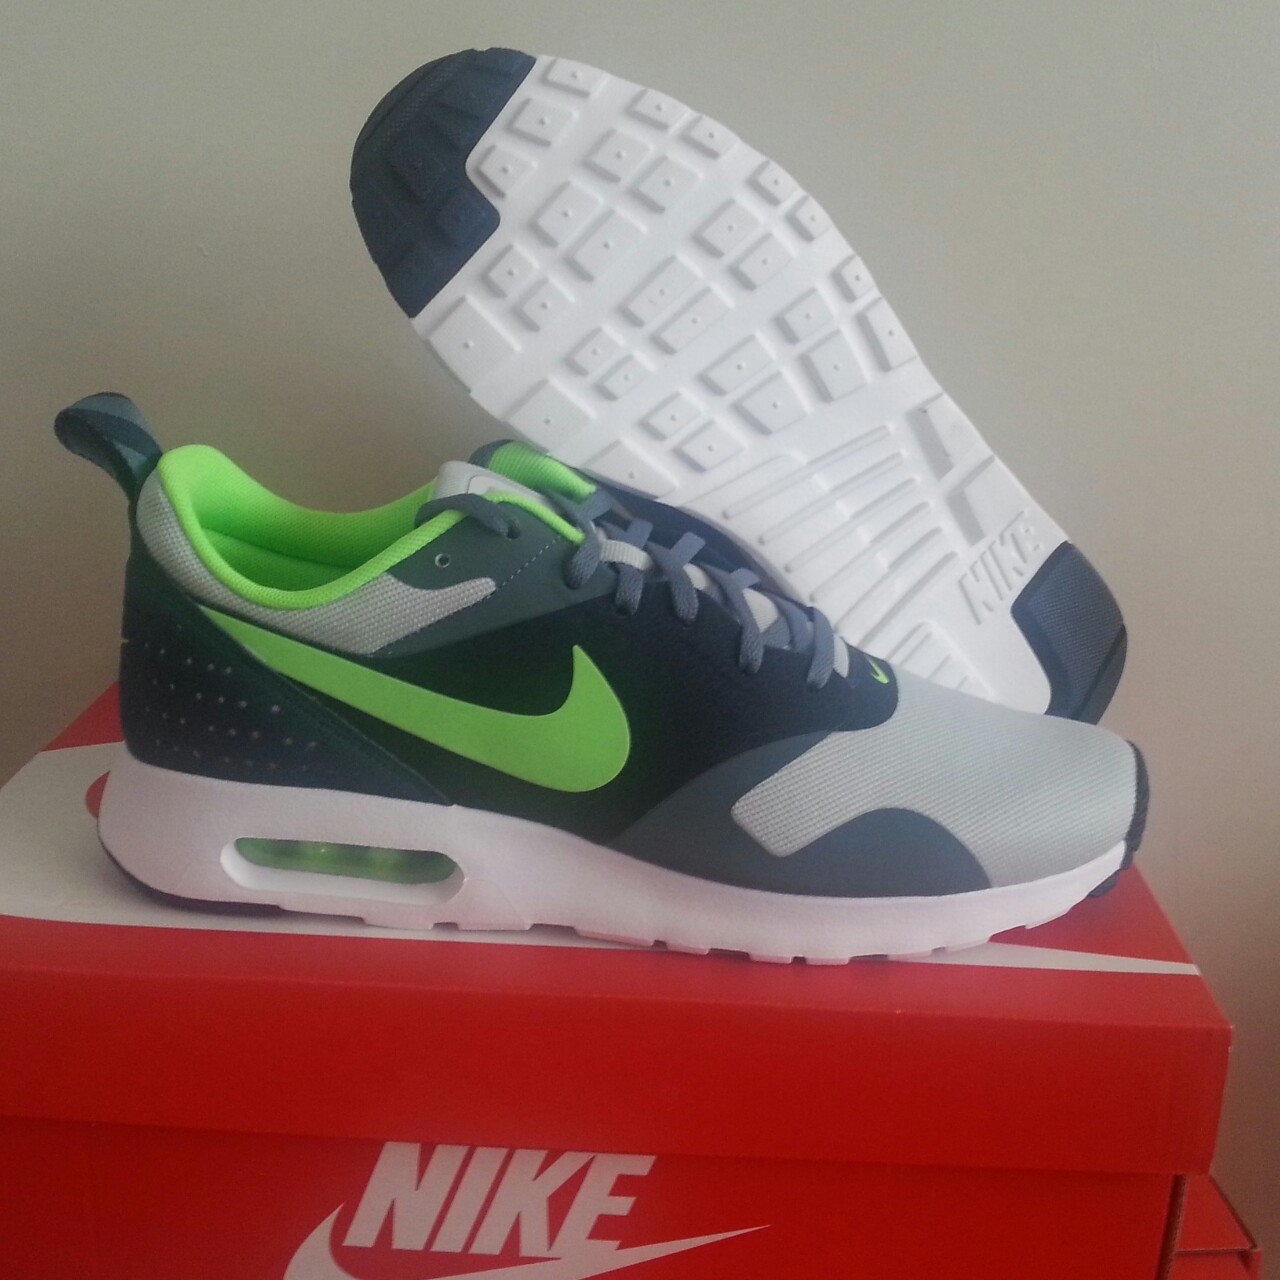 newest 1e302 910dd  sportssector. 4 years ago. Birmingham, United Kingdom. Nike Air Max Tavas  Mens Colour  Grey Mist Armoury Slate Obsidian Flash Lime Brand ...